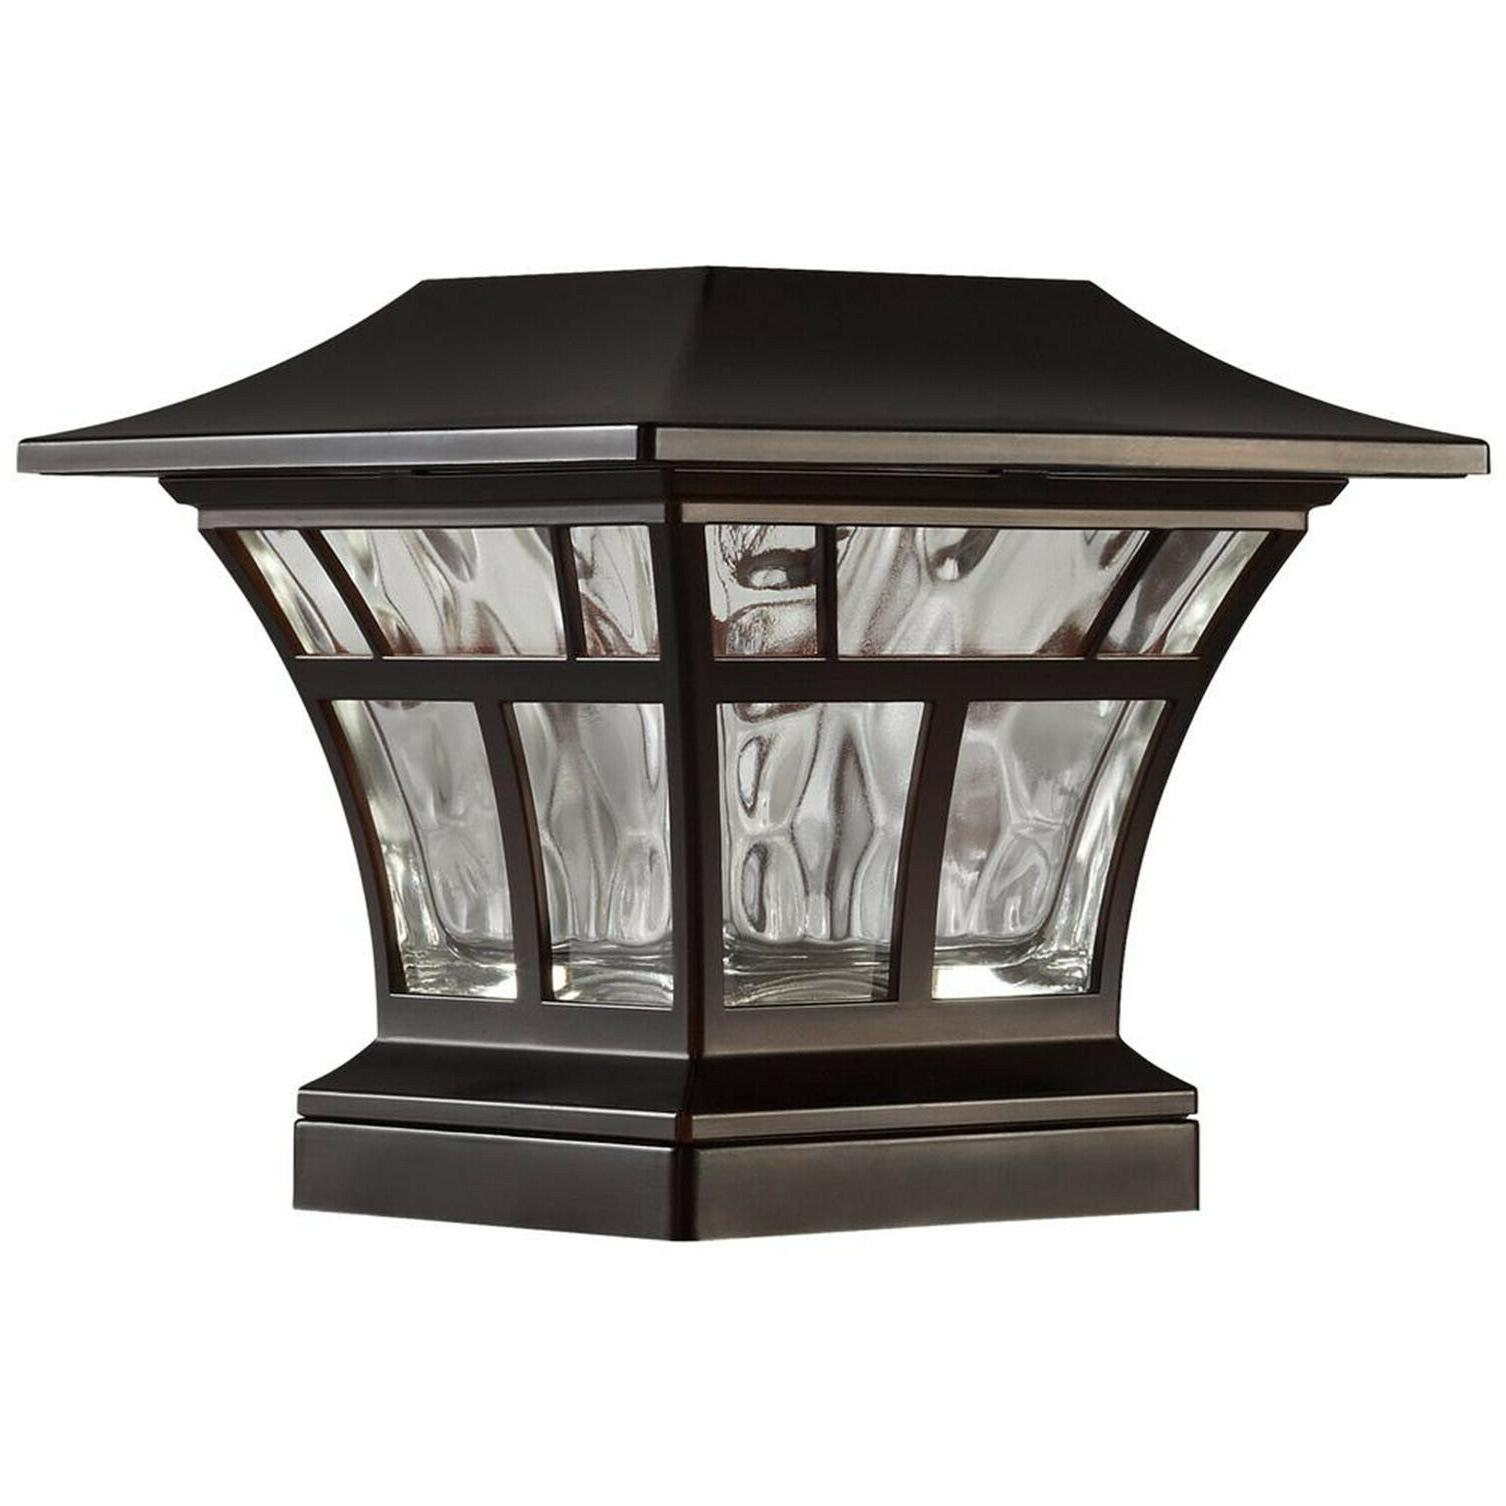 "2-PACK BRONZE DECK 4""x4"" Outdoor Garden Lighting"